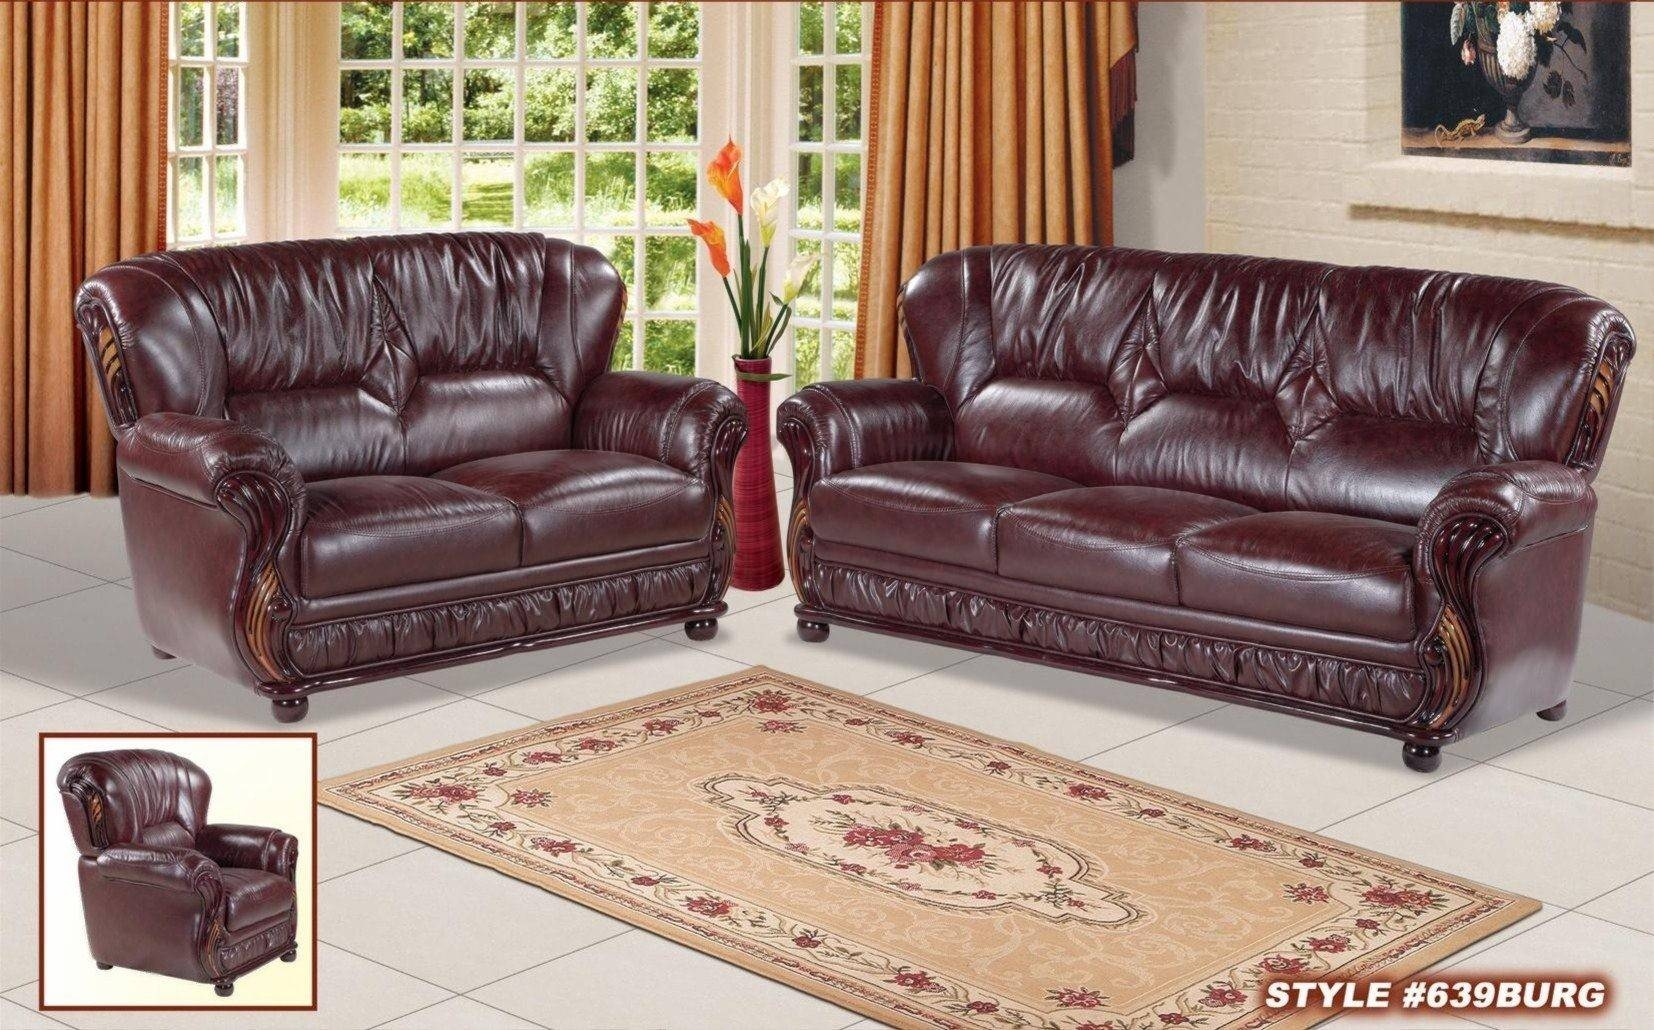 Sofas Center : Burgundy Leather Sofa And Tufted Colorado With Within Burgundy Leather Sofa Sets (View 14 of 15)